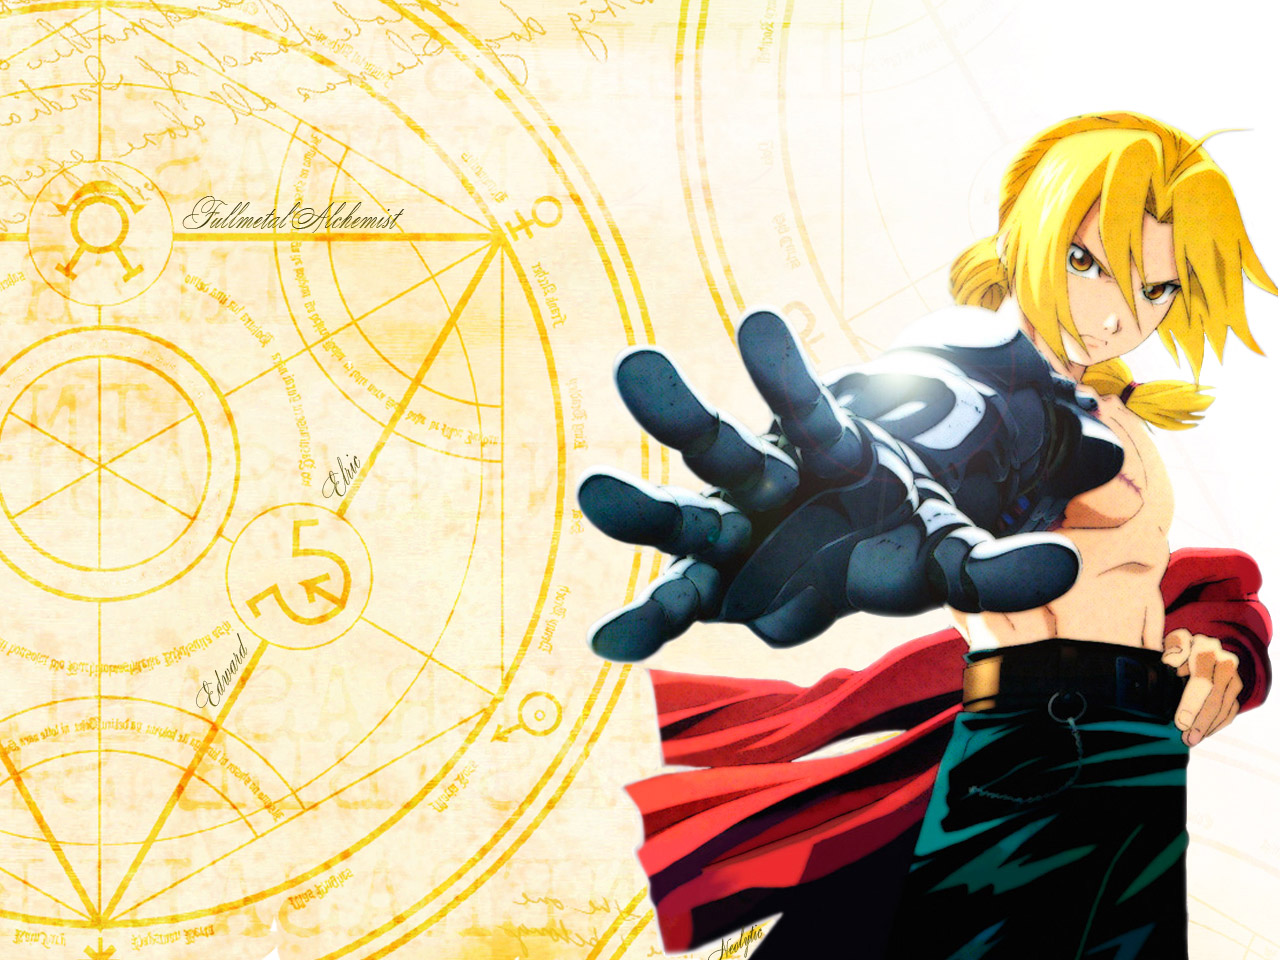 Manga And Anime Wallpapers Fullmetal Alchemist HD Wallpaper 1280x960